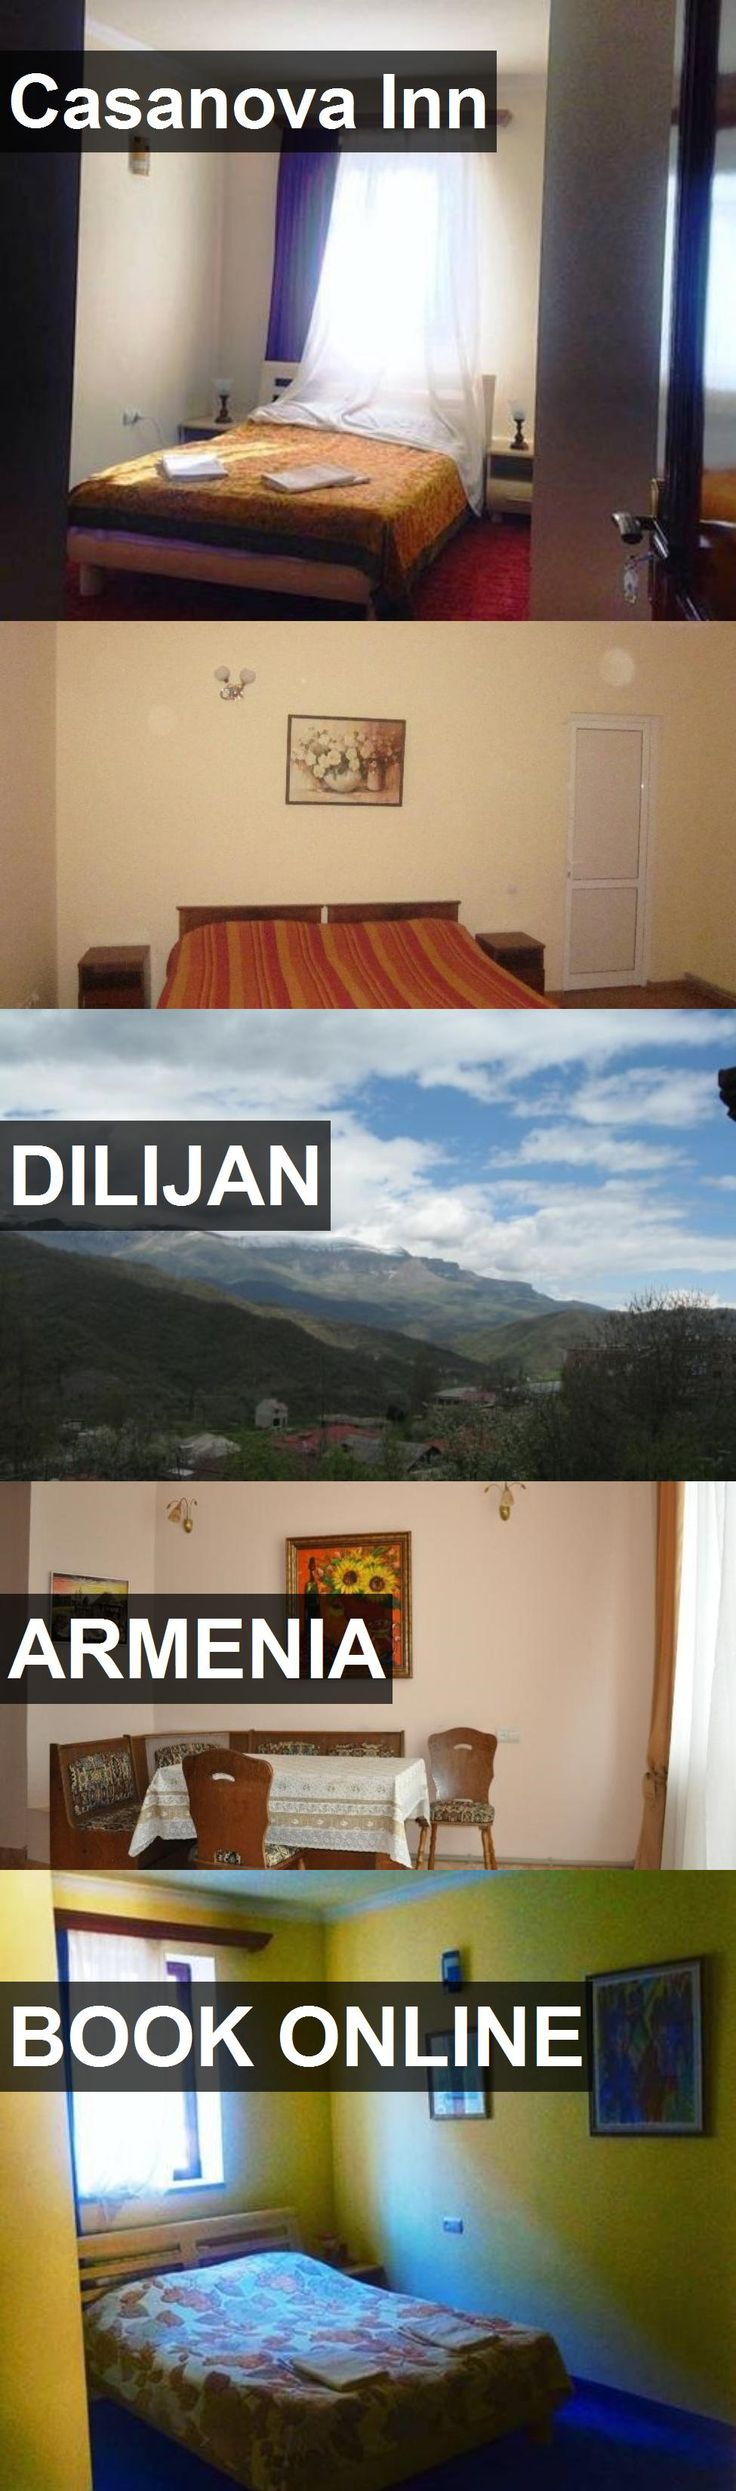 Hotel Casanova Inn in Dilijan, Armenia. For more information, photos, reviews and best prices please follow the link. #Armenia #Dilijan #travel #vacation #hotel